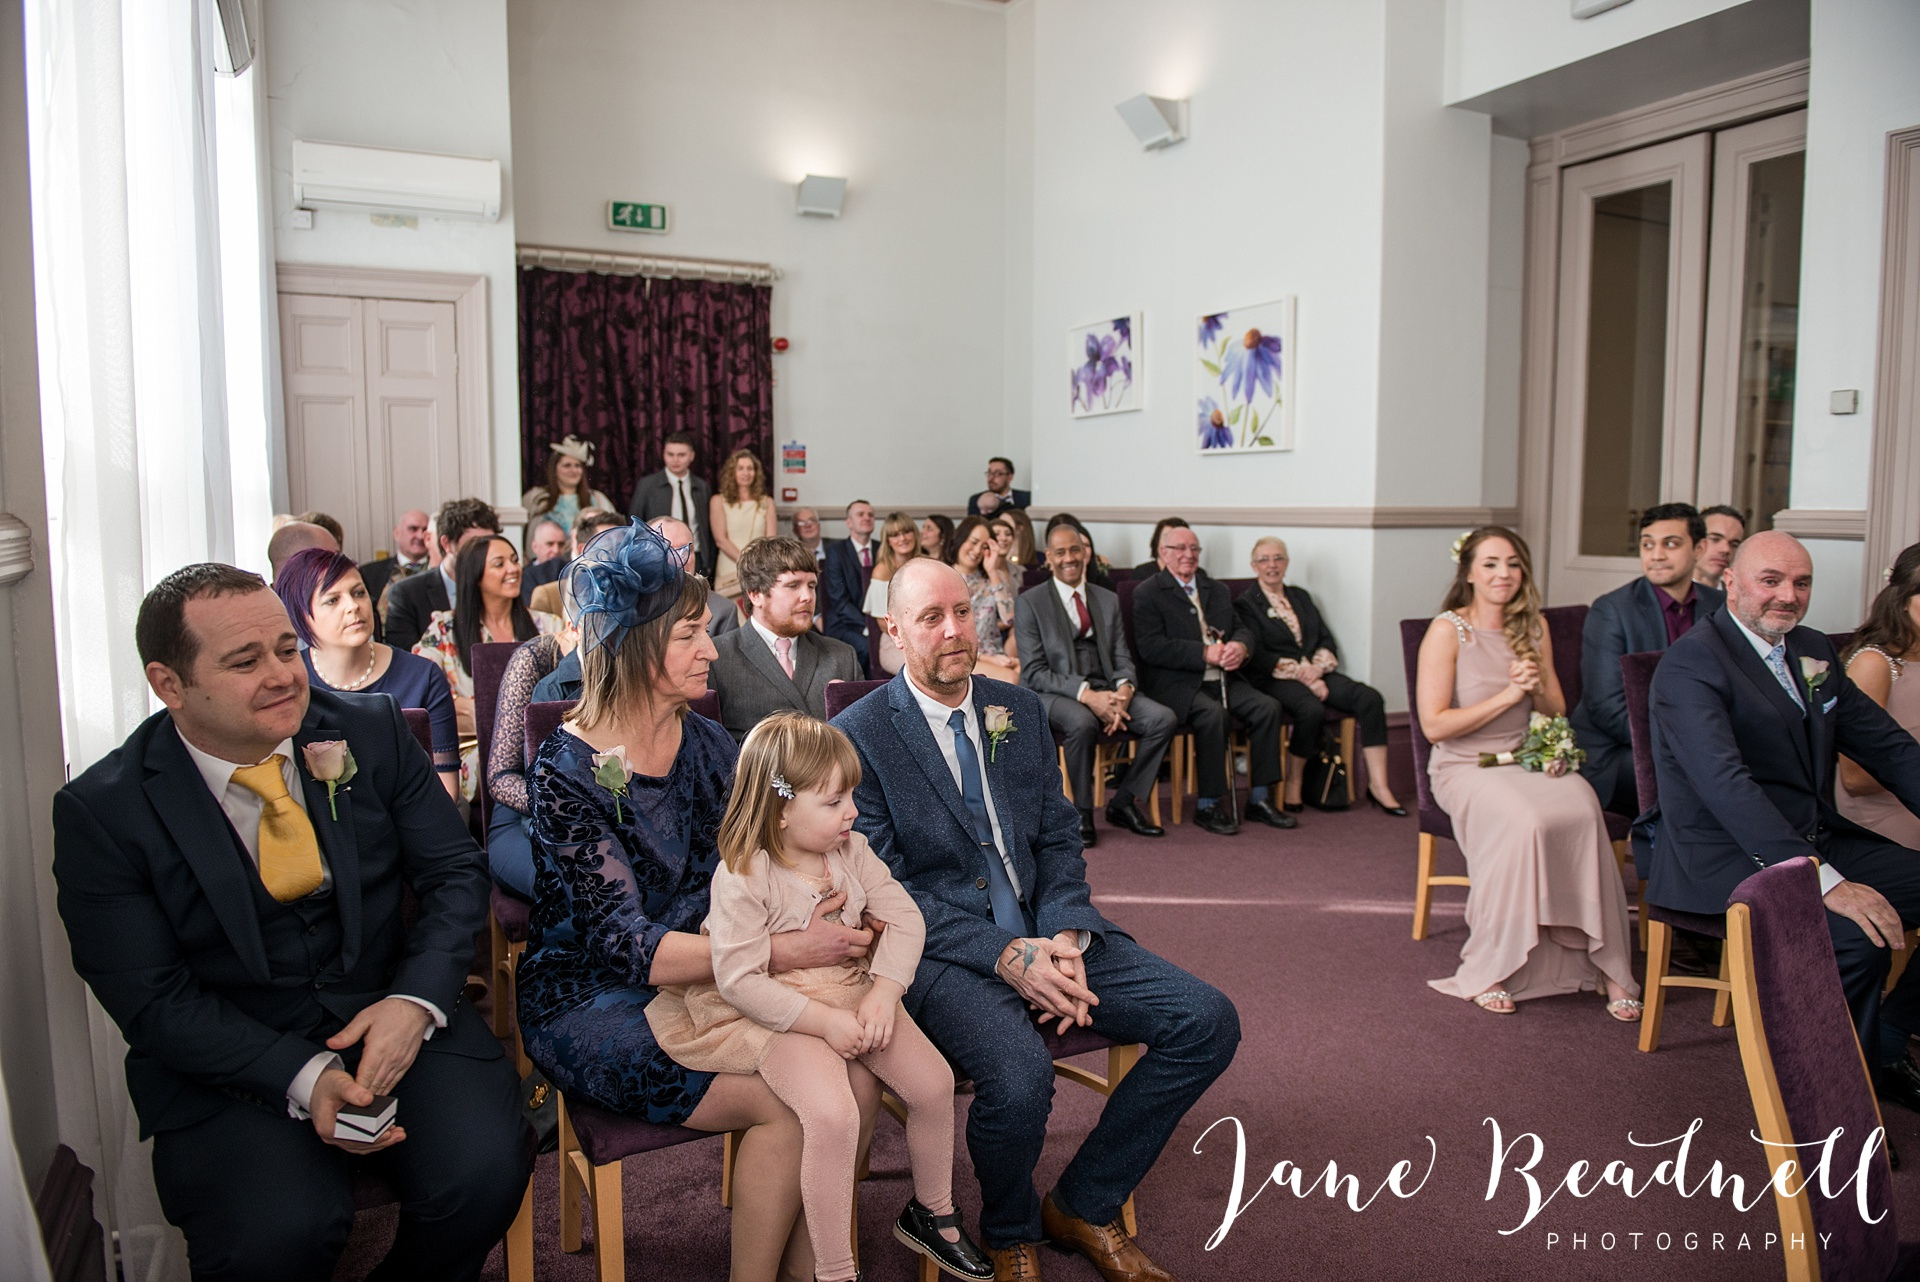 Wedding photography Cross Keys Leeds Wedding Jane Beadnell Photography_0036